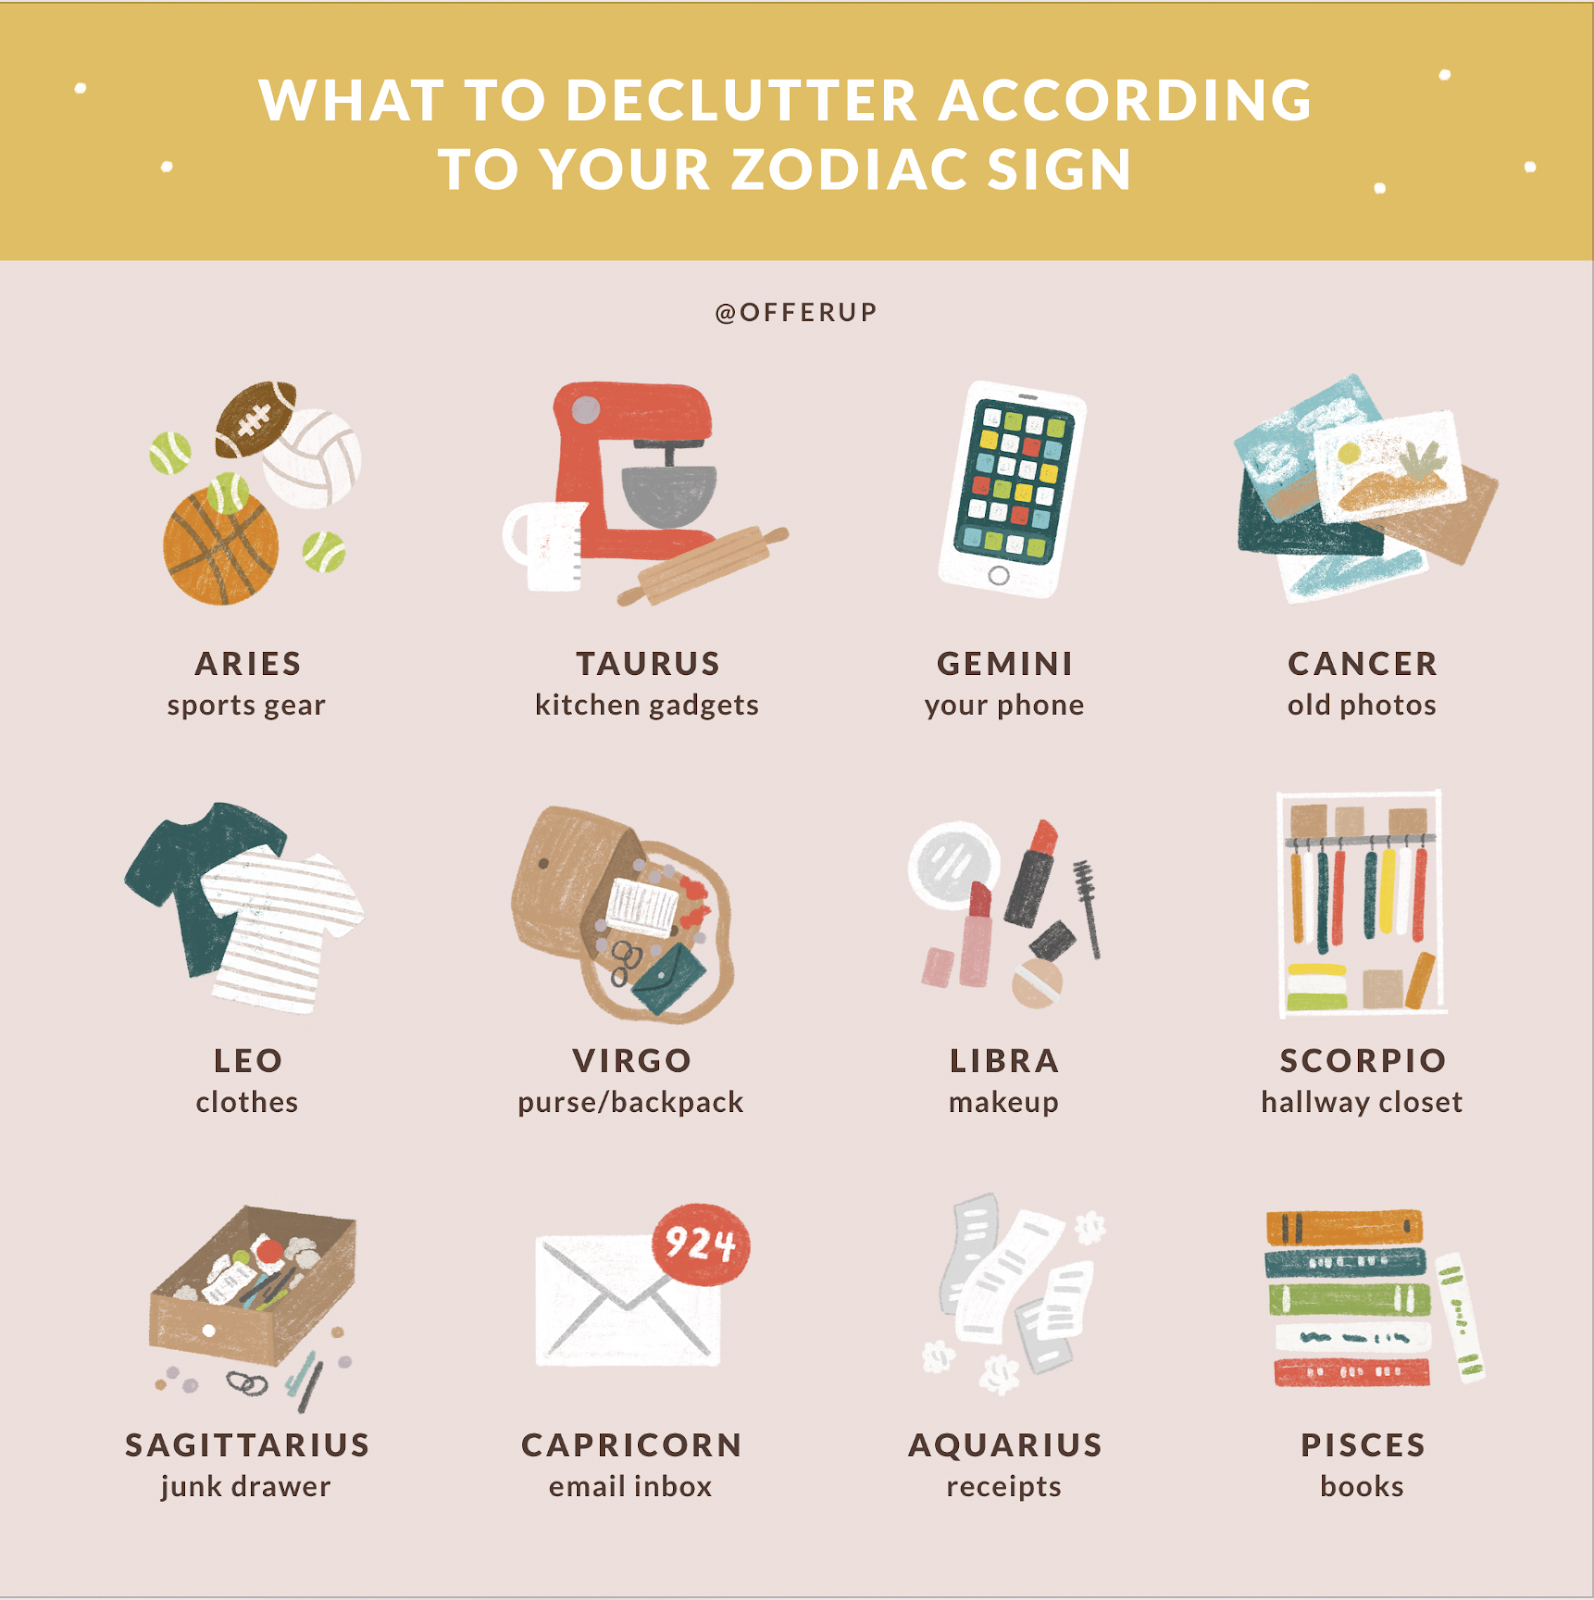 list of zodiac signs and their decluttering tasks